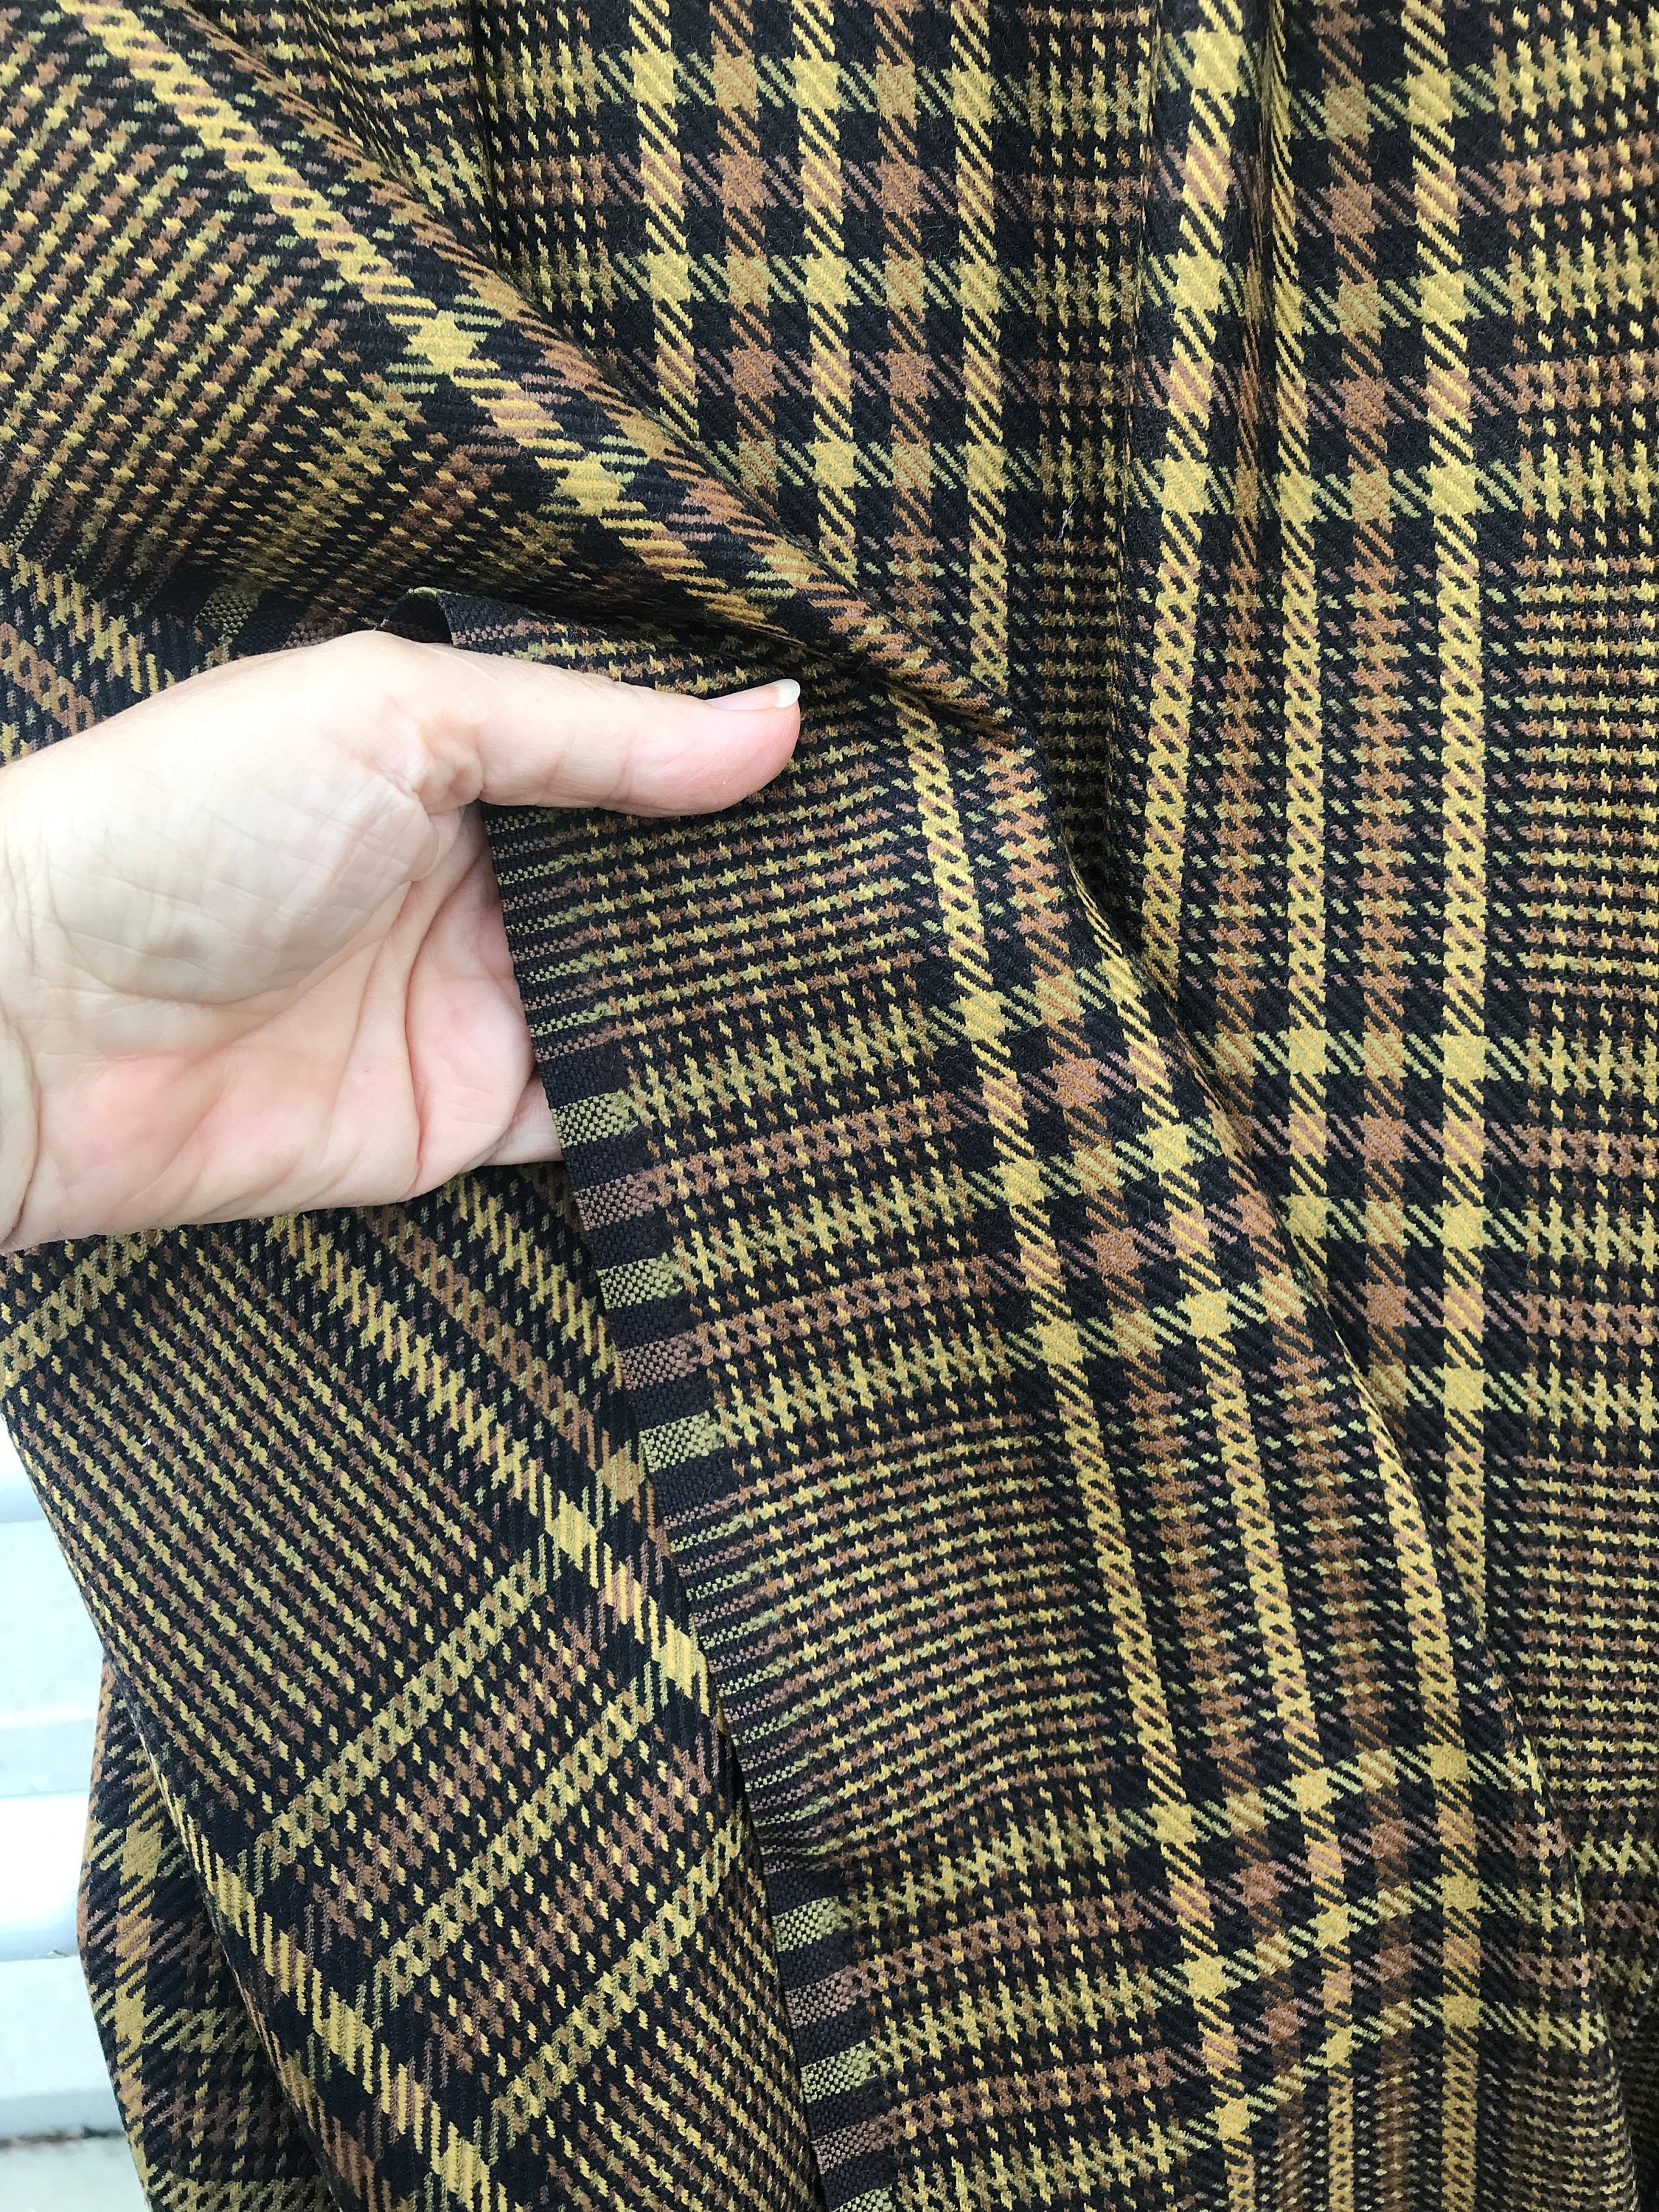 prince of Wales check tartan wool fabric brown gold mustard check pattern wool suiting fabric pure wool suiting jacketing prince de Galles